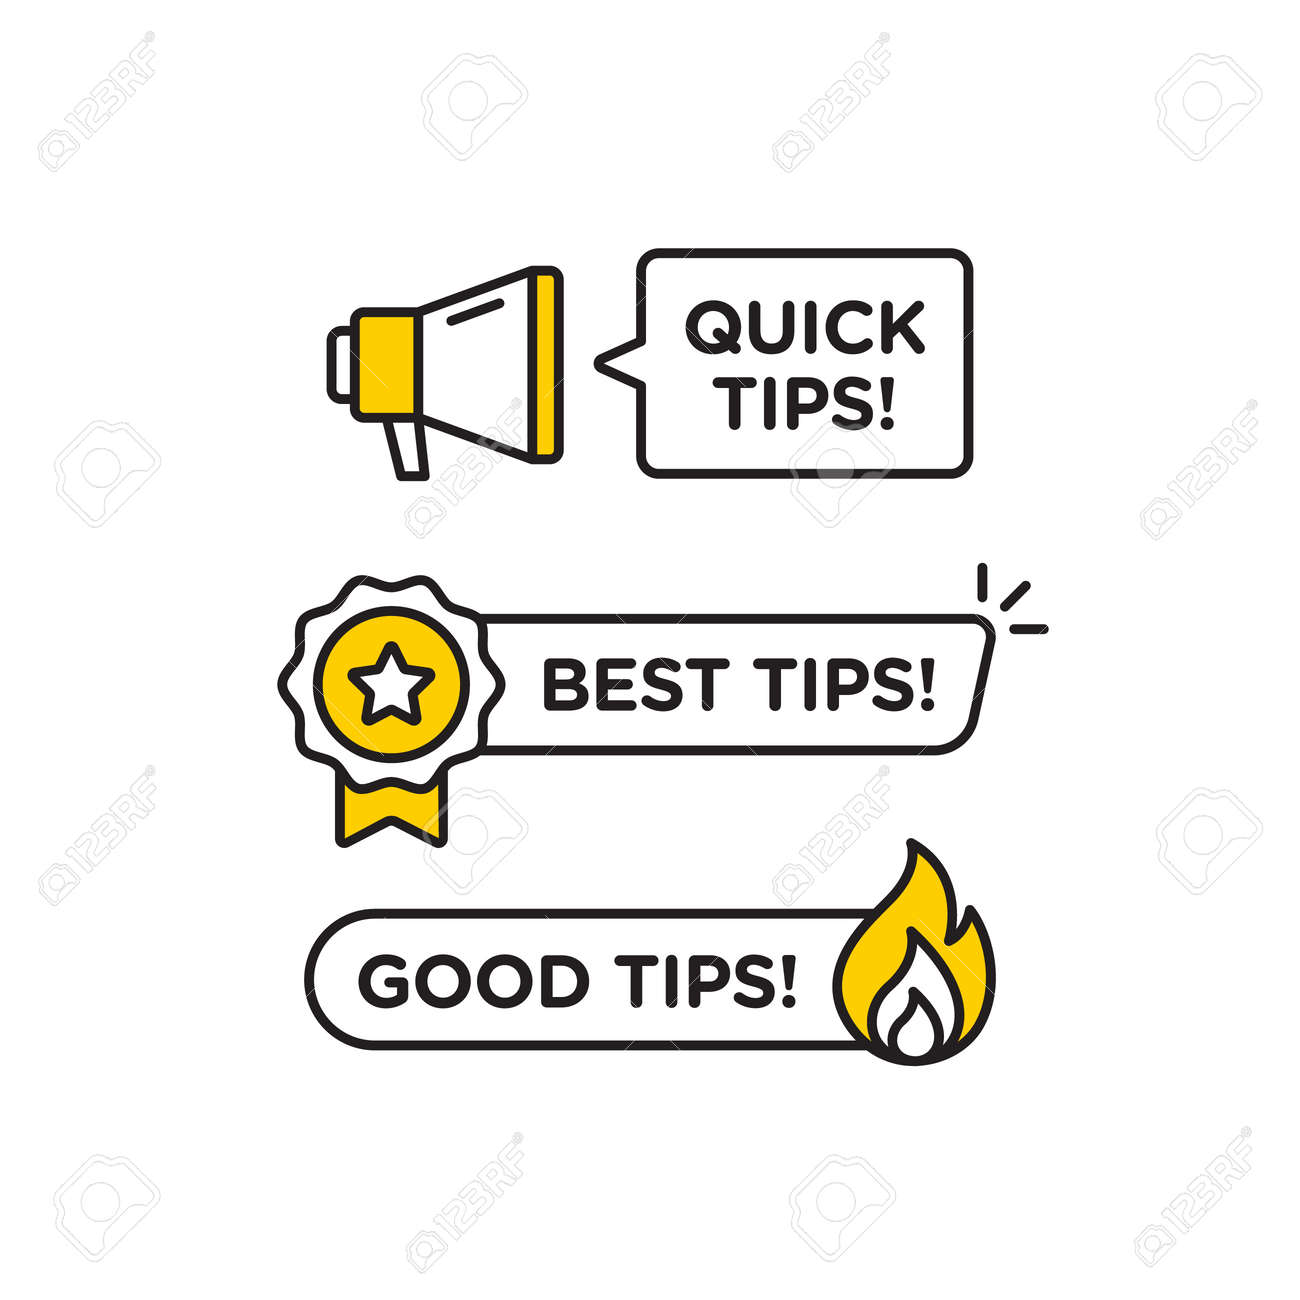 Quick tips, helpful tricks vector icon or symbol set with black and yellow color and light bulb element suitable for web. emblems and banners vector set isolated - 162382209